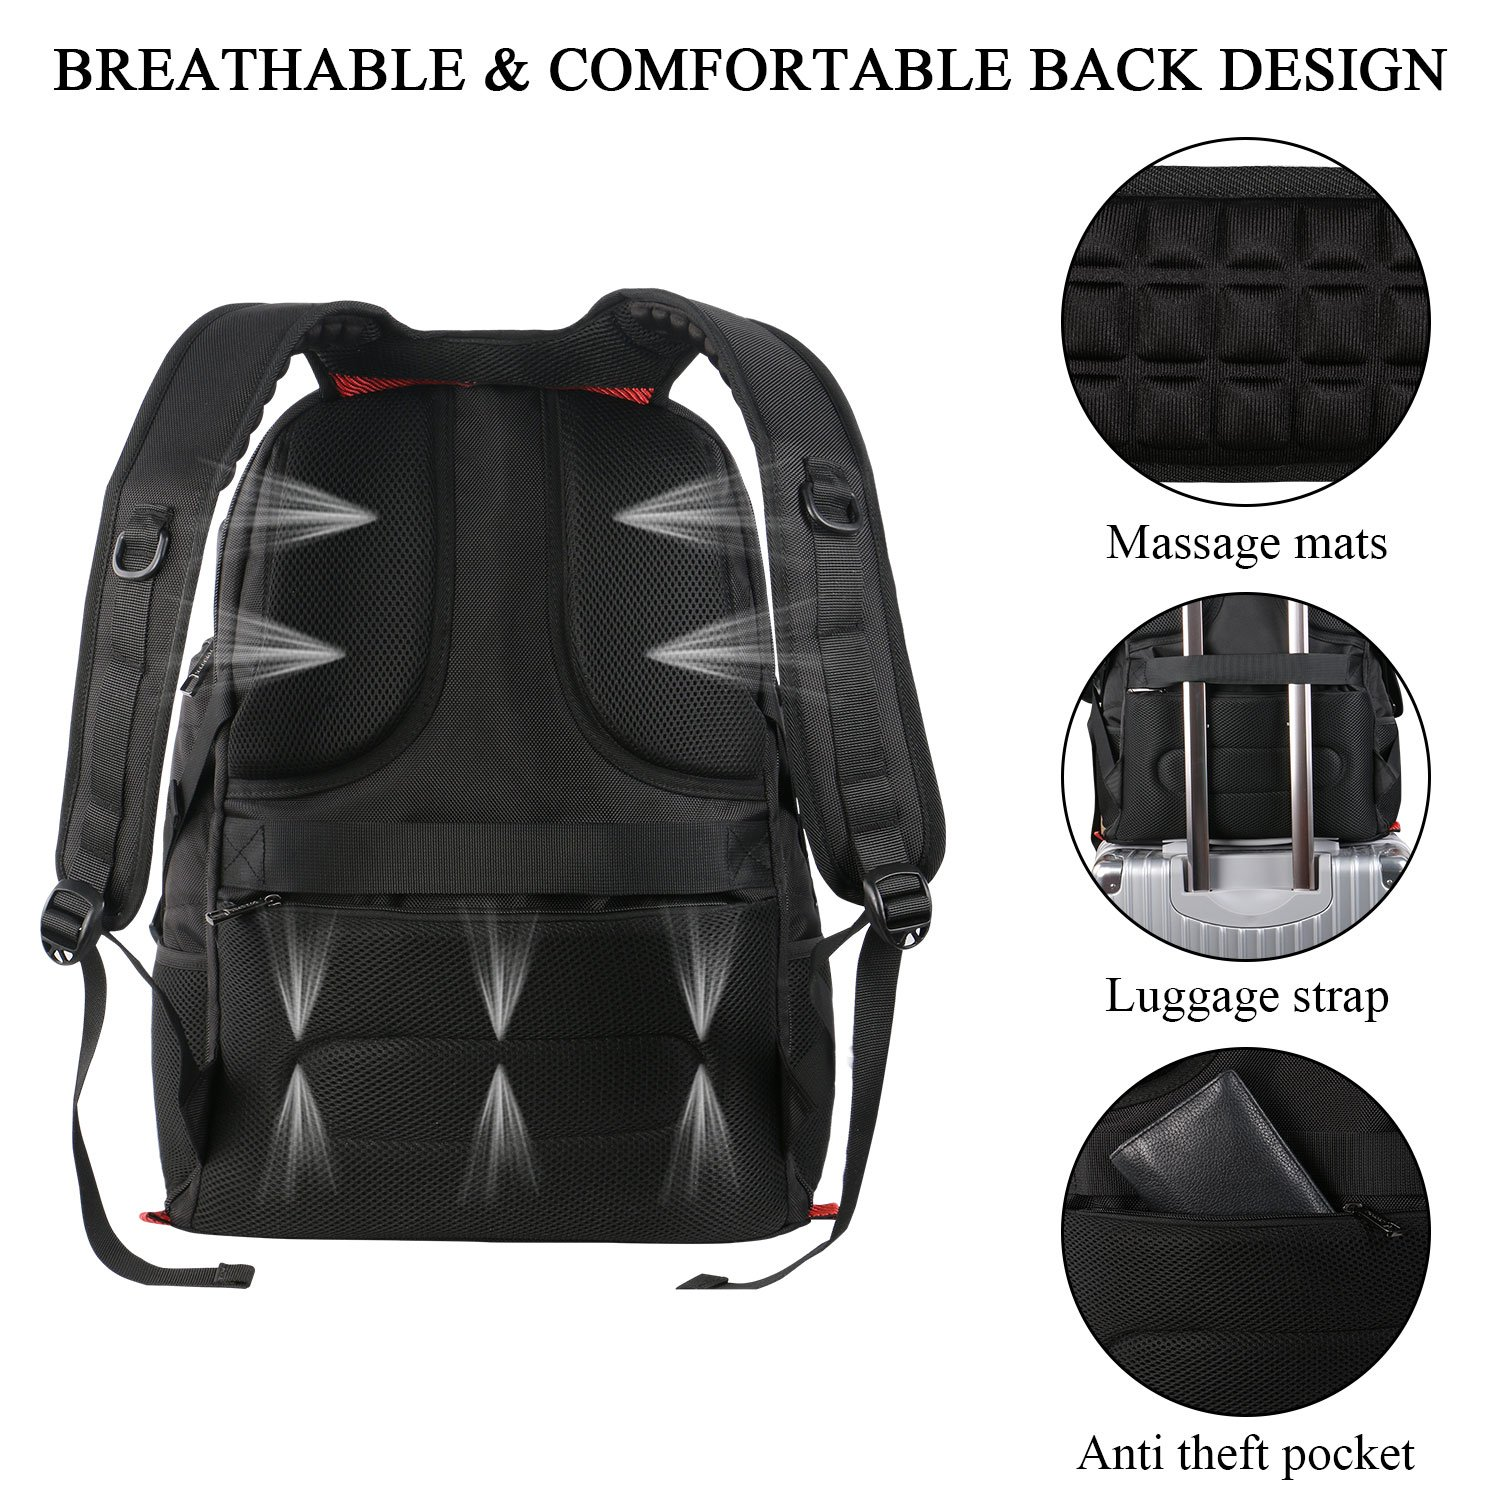 17 inch Laptop Backpack,Large Travel Backpack,TSA Friendly Durable Computer Bagpack with Luggage Sleeve for Men Women, Water Resistant Business College School Bag with USB Charger Port, Black by YOREPEK (Image #6)